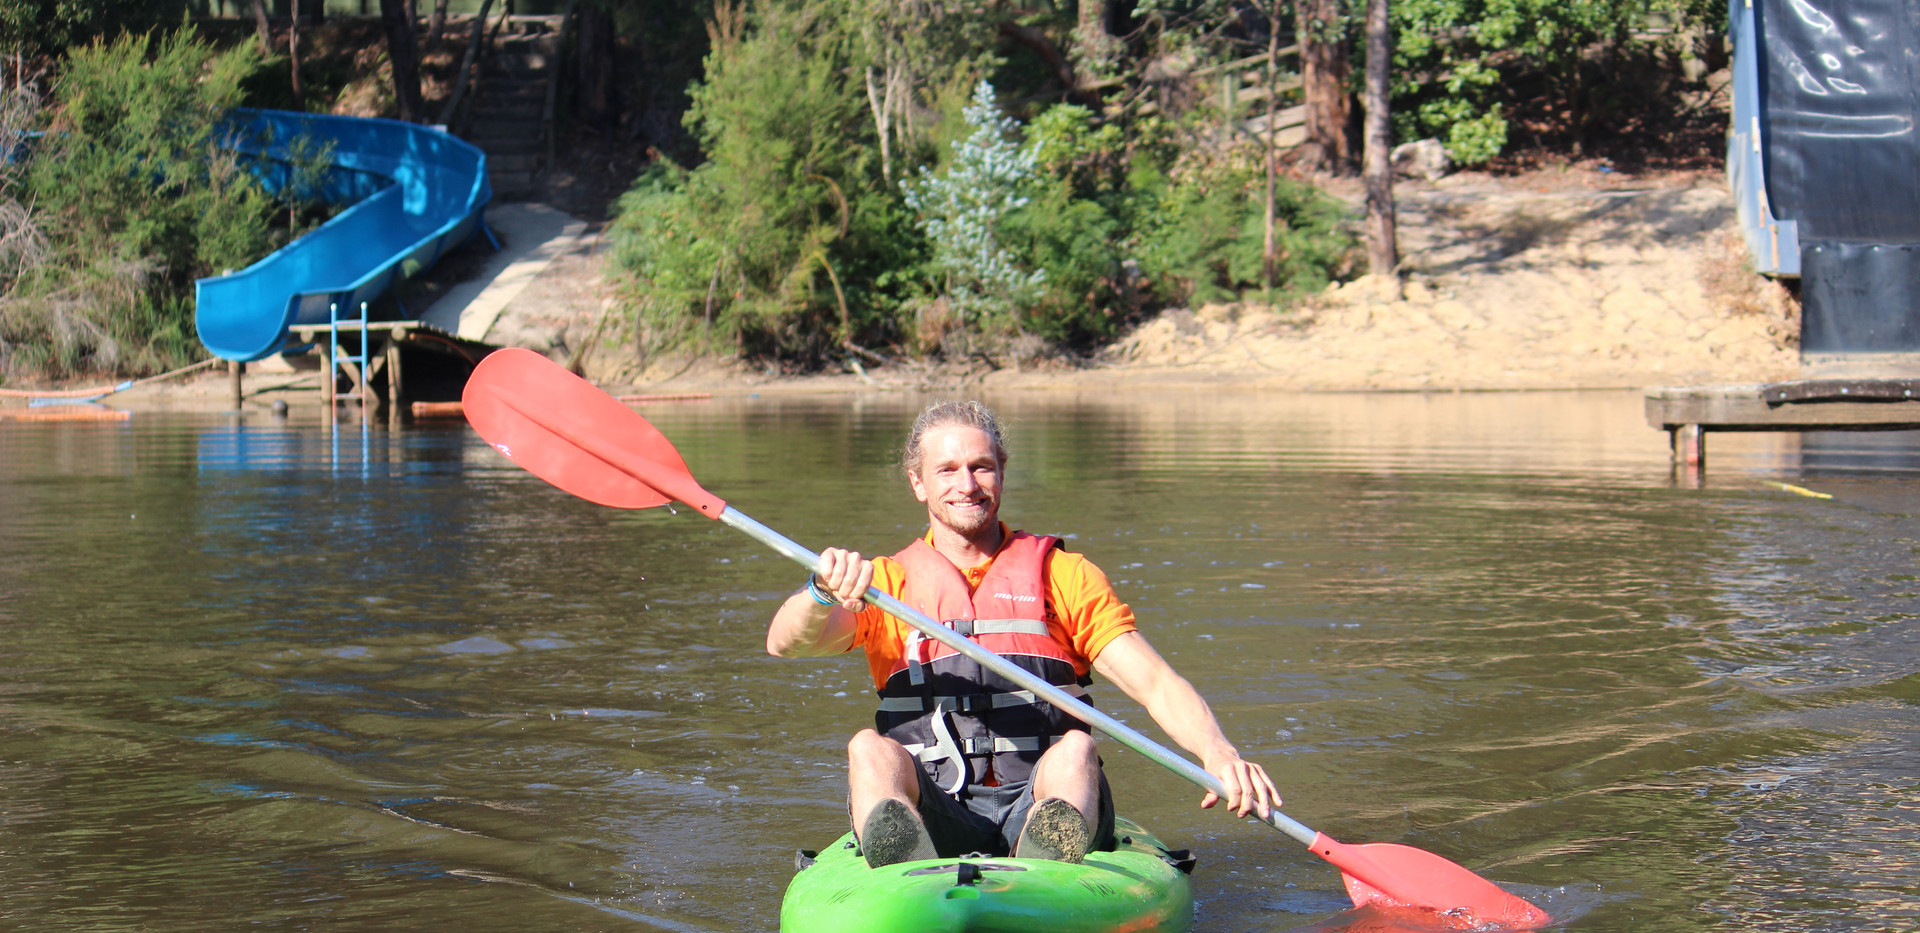 Kayaking - Activity available for booking